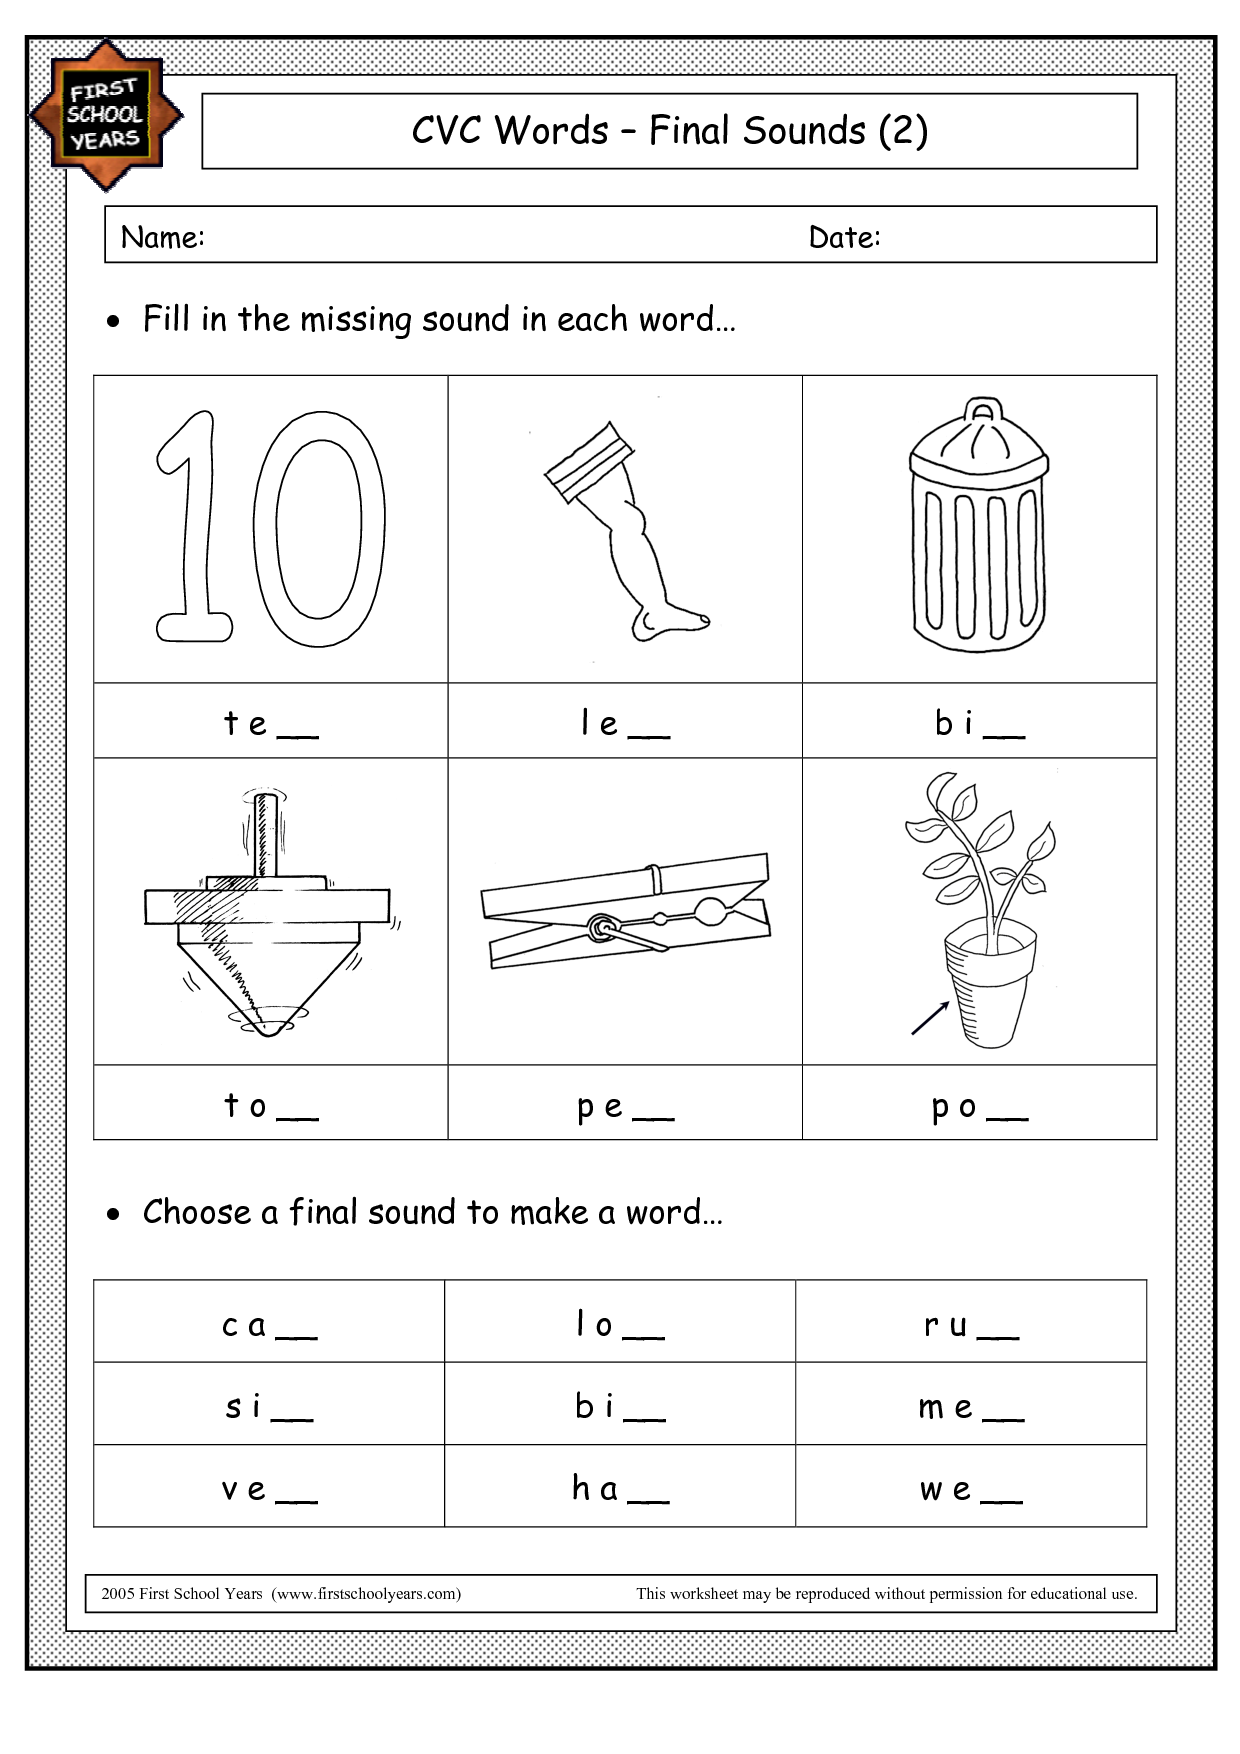 small resolution of ending sound worksheet   Cvc words